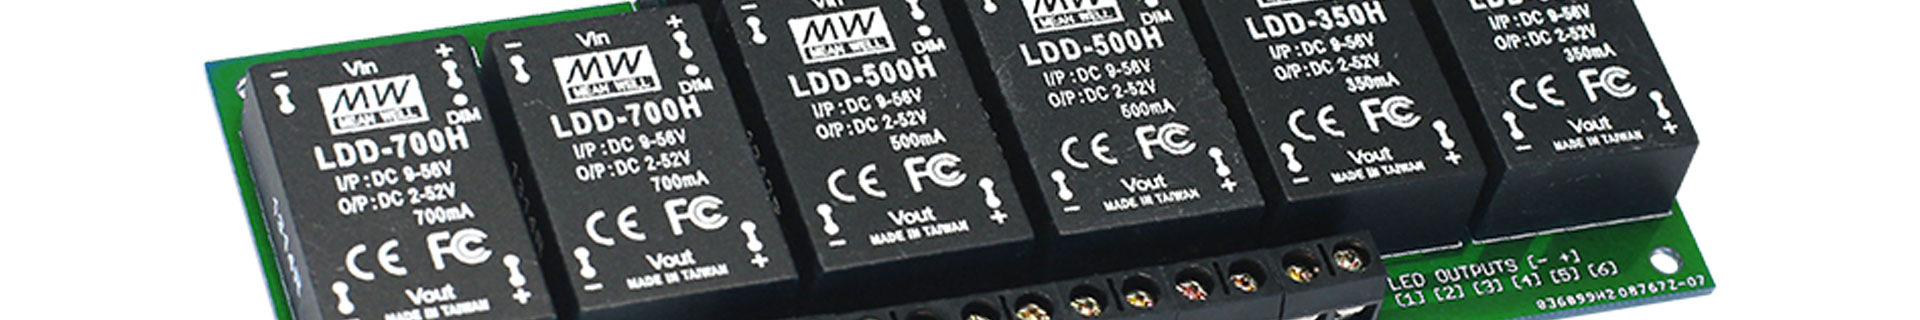 Mean Well DCDC LED drivers